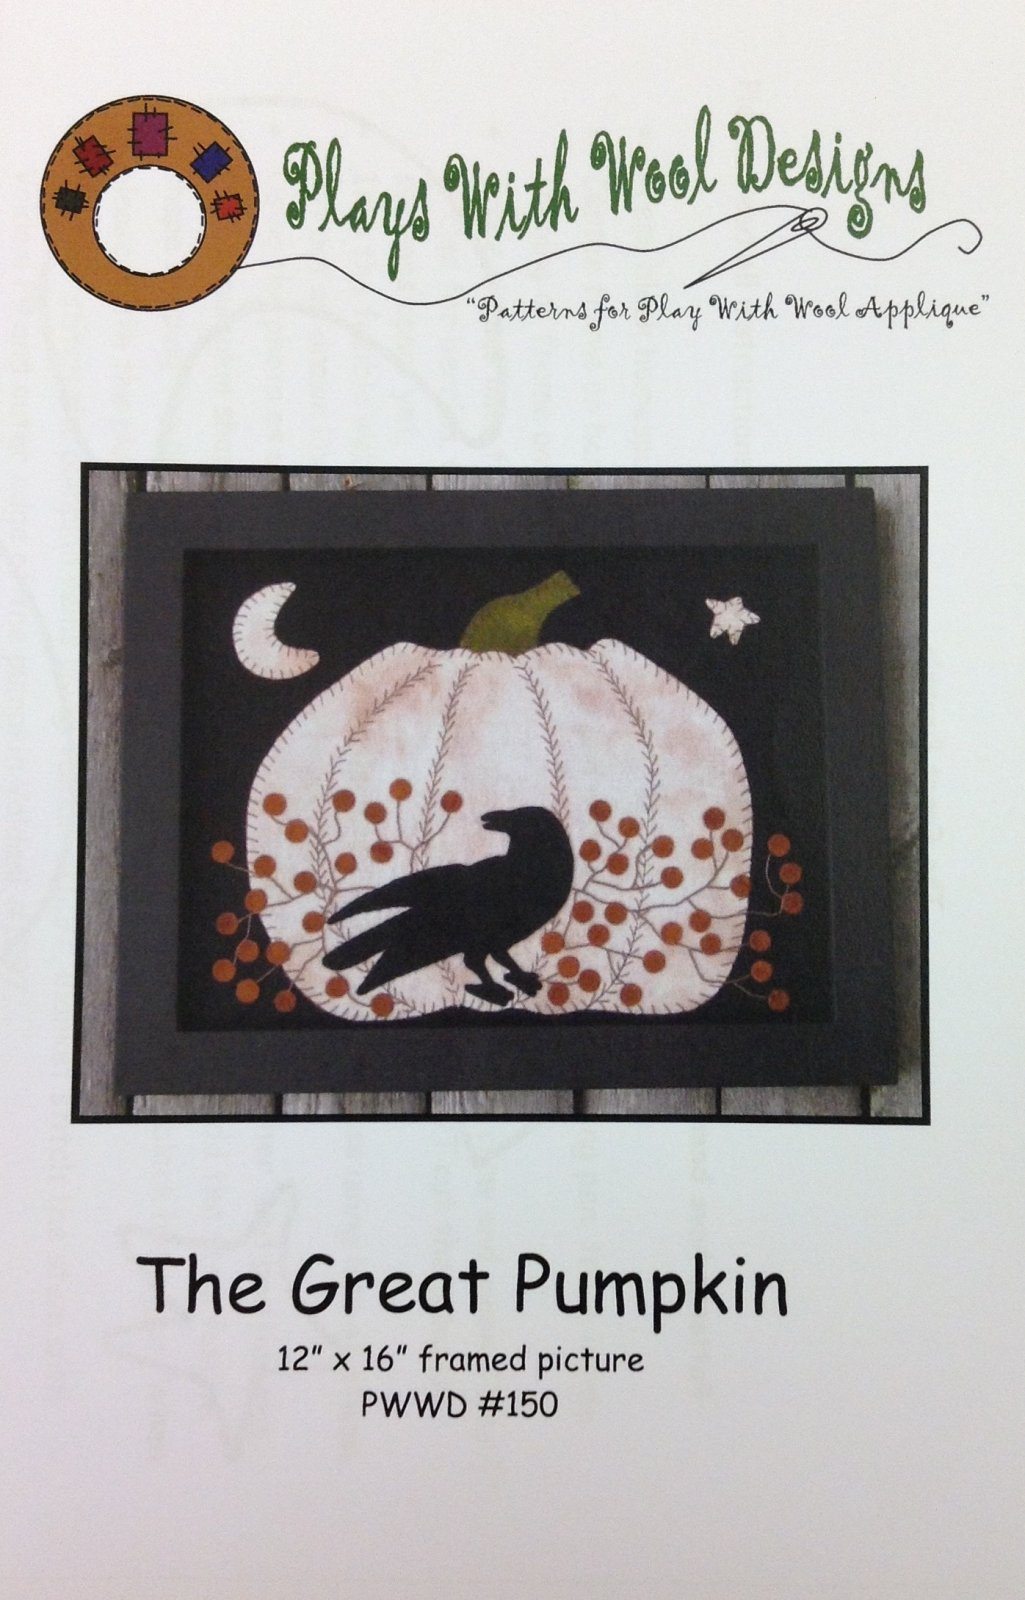 The Great Pumpkin by Plays With Wool Designs